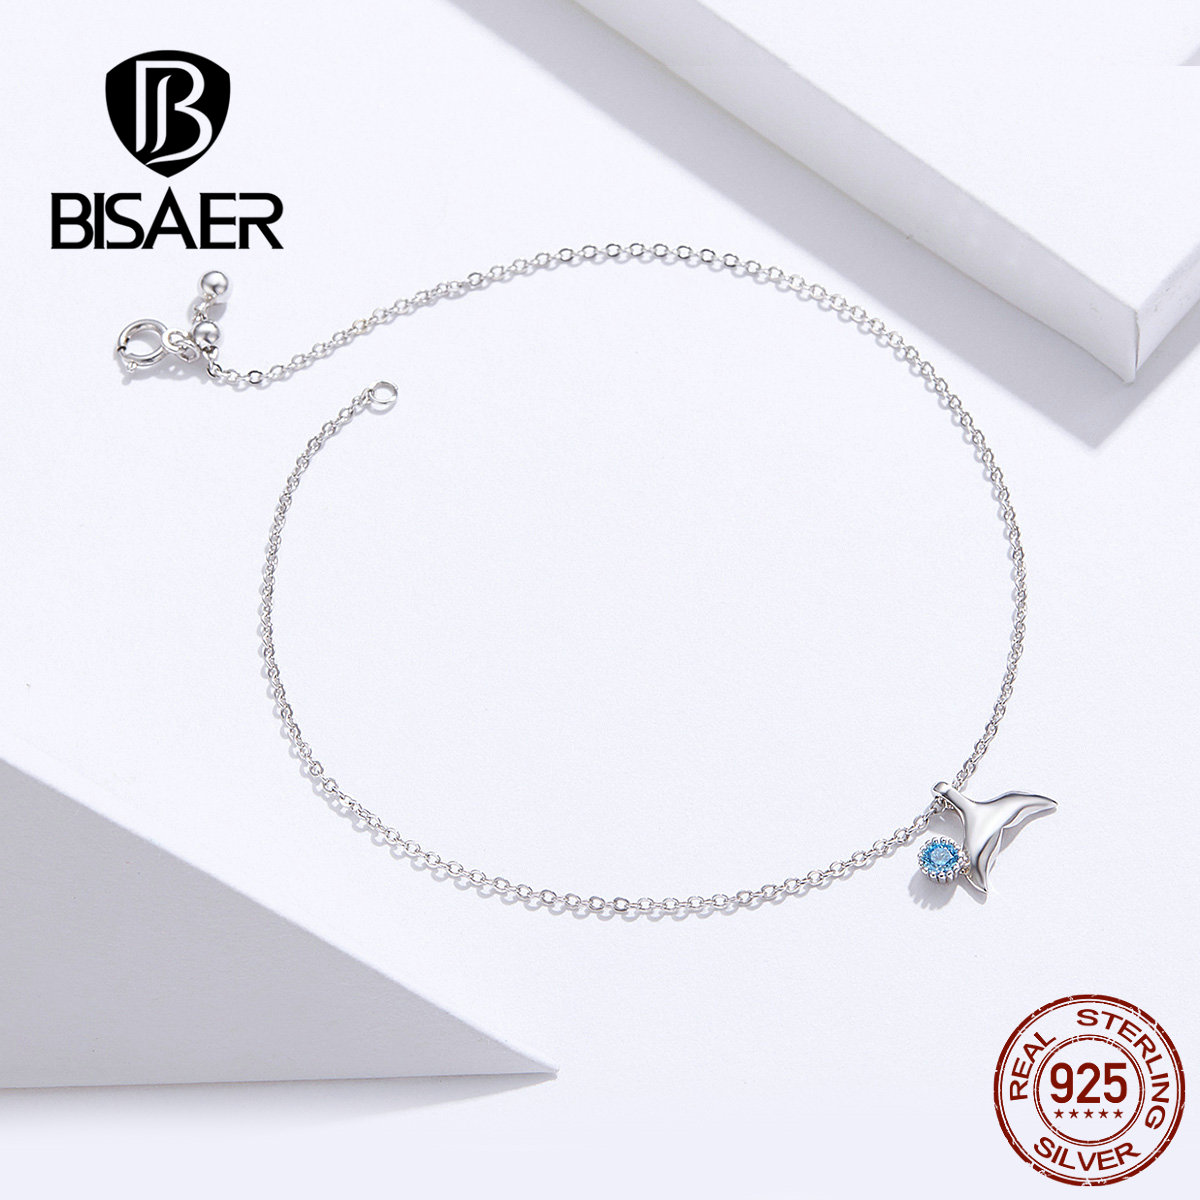 BISAER Mermaid Anklets 925 Sterling Silver Mermaid's Story Chain Silver Anklets for Women Sterling Silver Jewelry ECT004 3